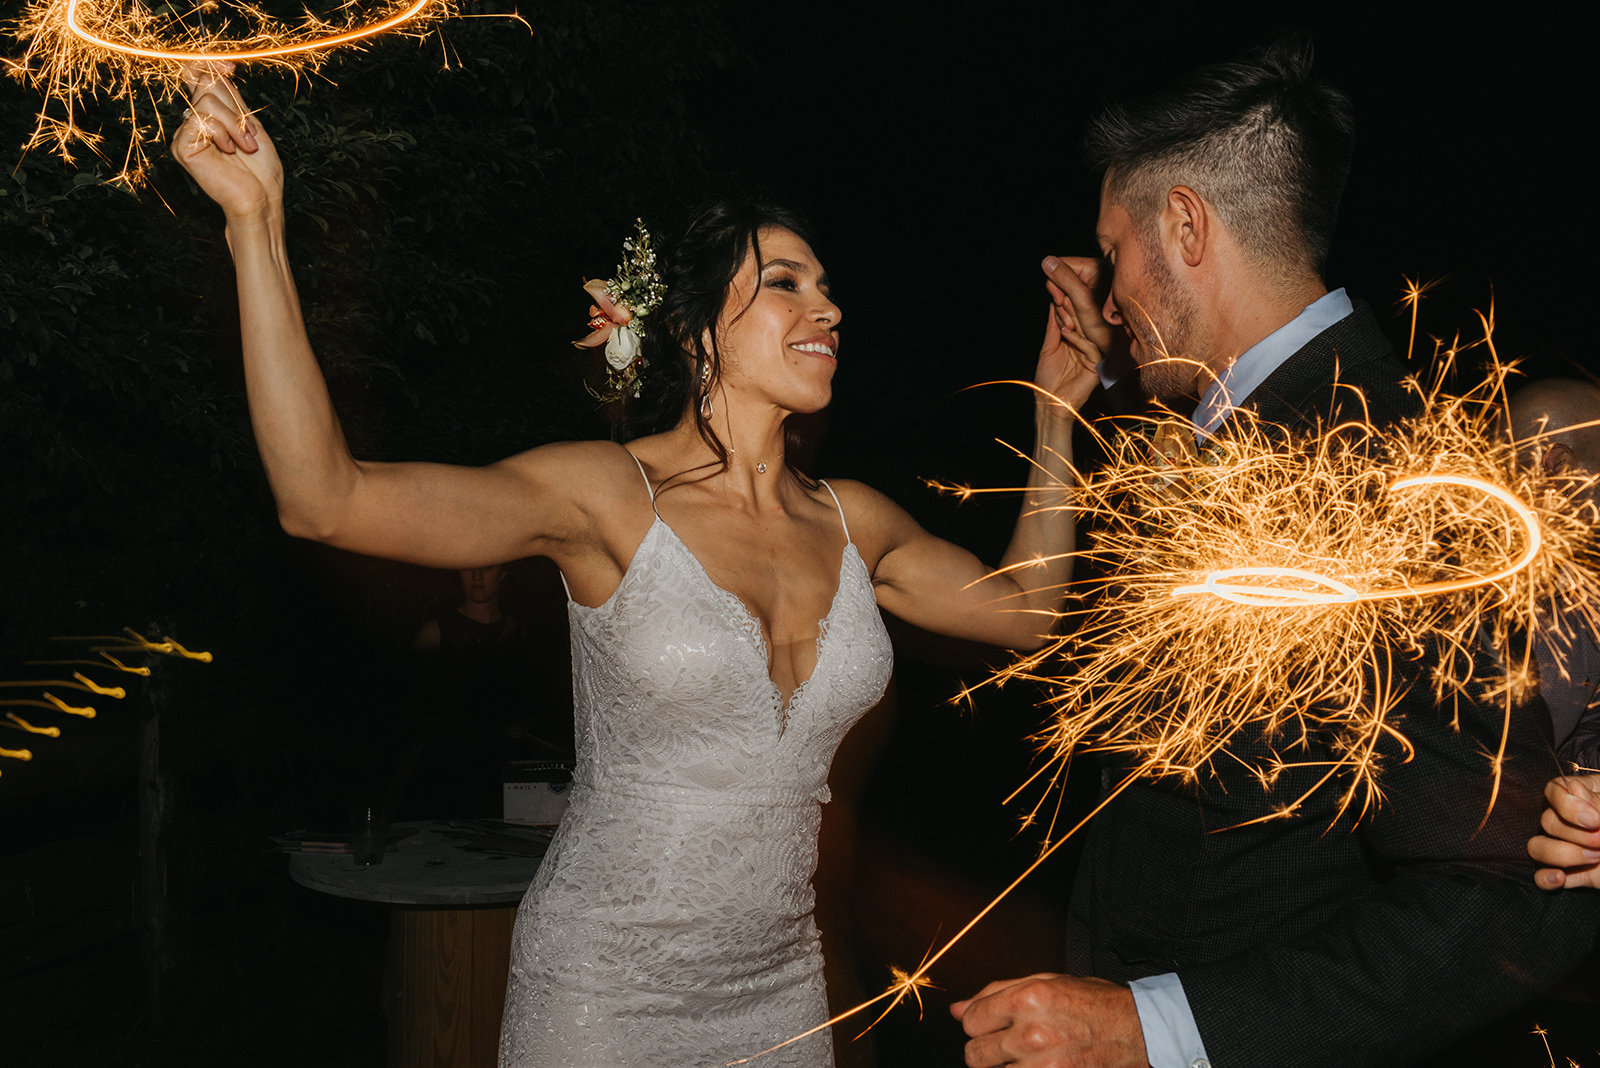 Late night sparkler dance party with the bride and groom - Pearl weddings & events